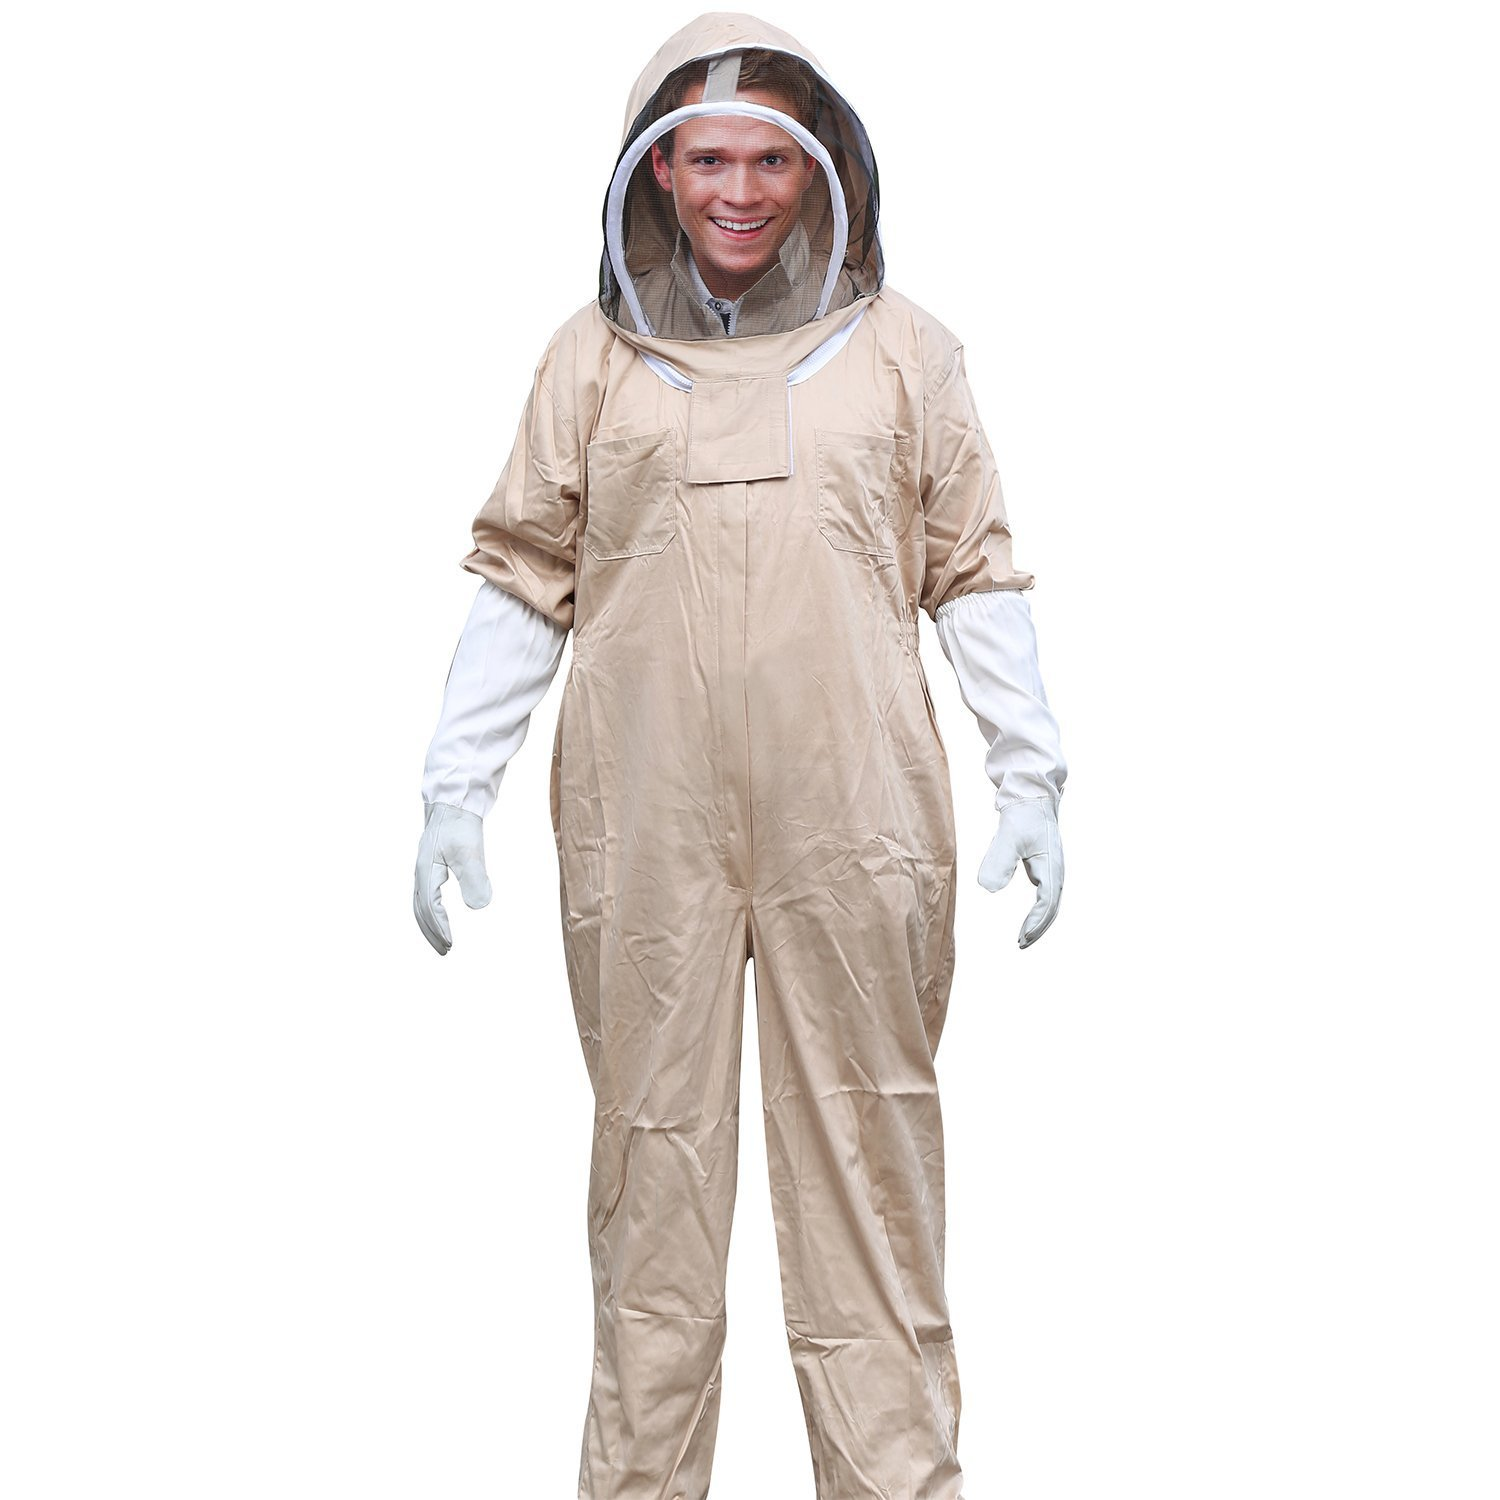 Aspectek New Professional Medium Cotton Full Body Beekeeping Bee Keeping Suit, with Veil Hood TRTD1263